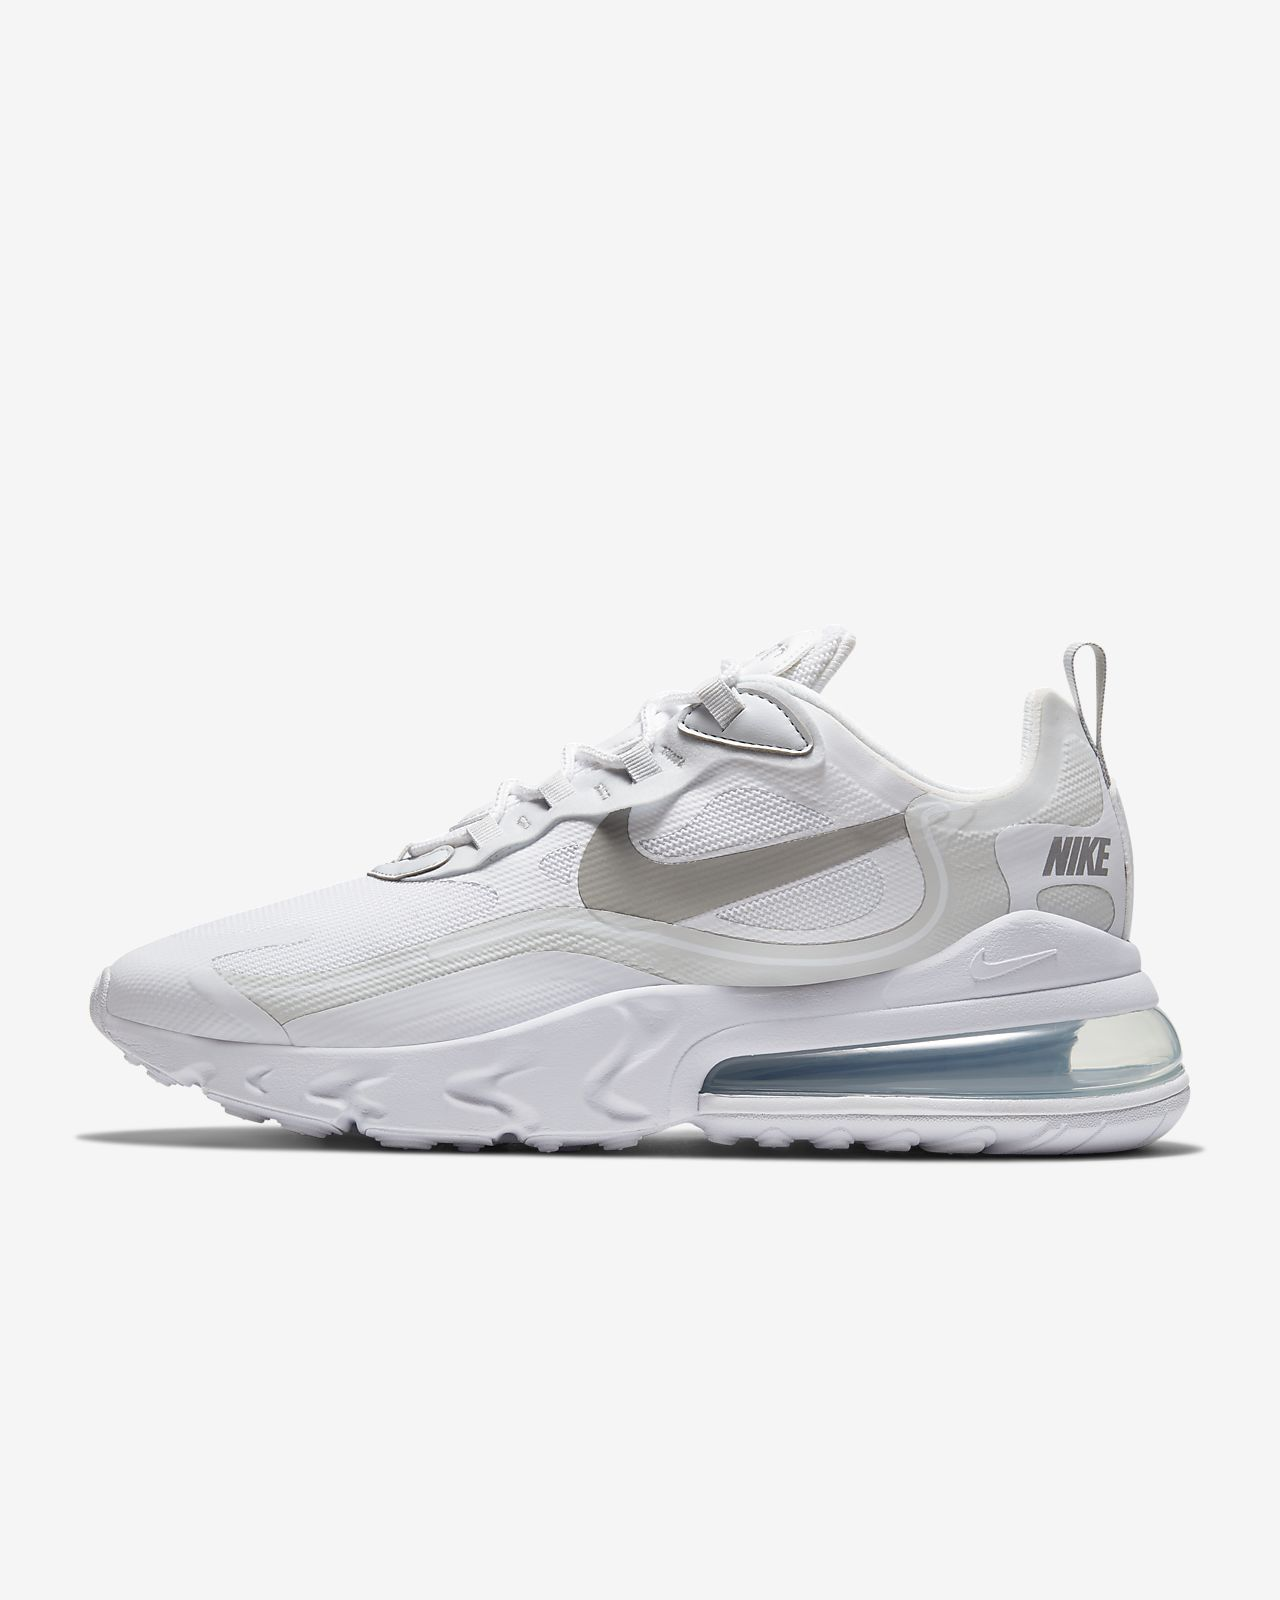 air max 270 react homme blanche